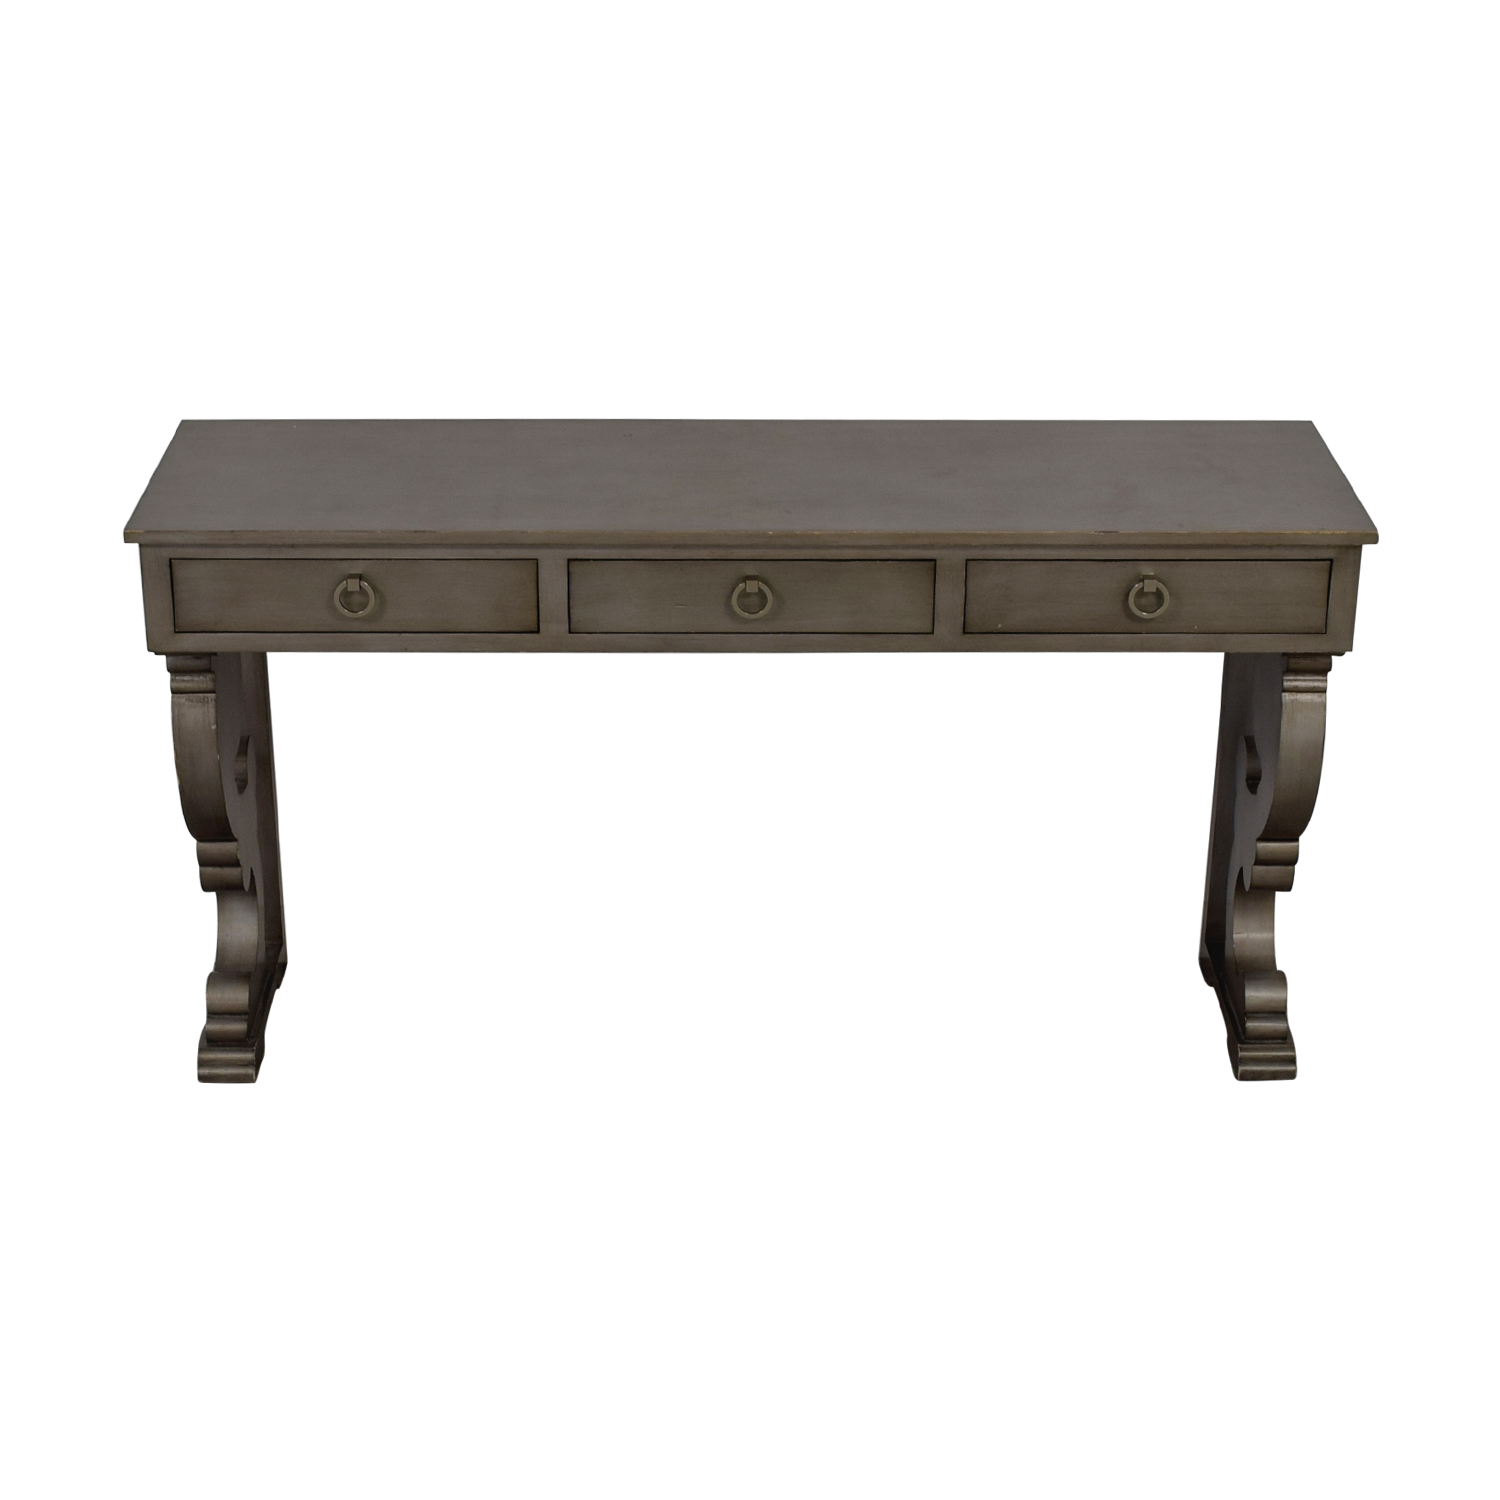 Layla Grace Layla Grace Chloe Grey Console Table price